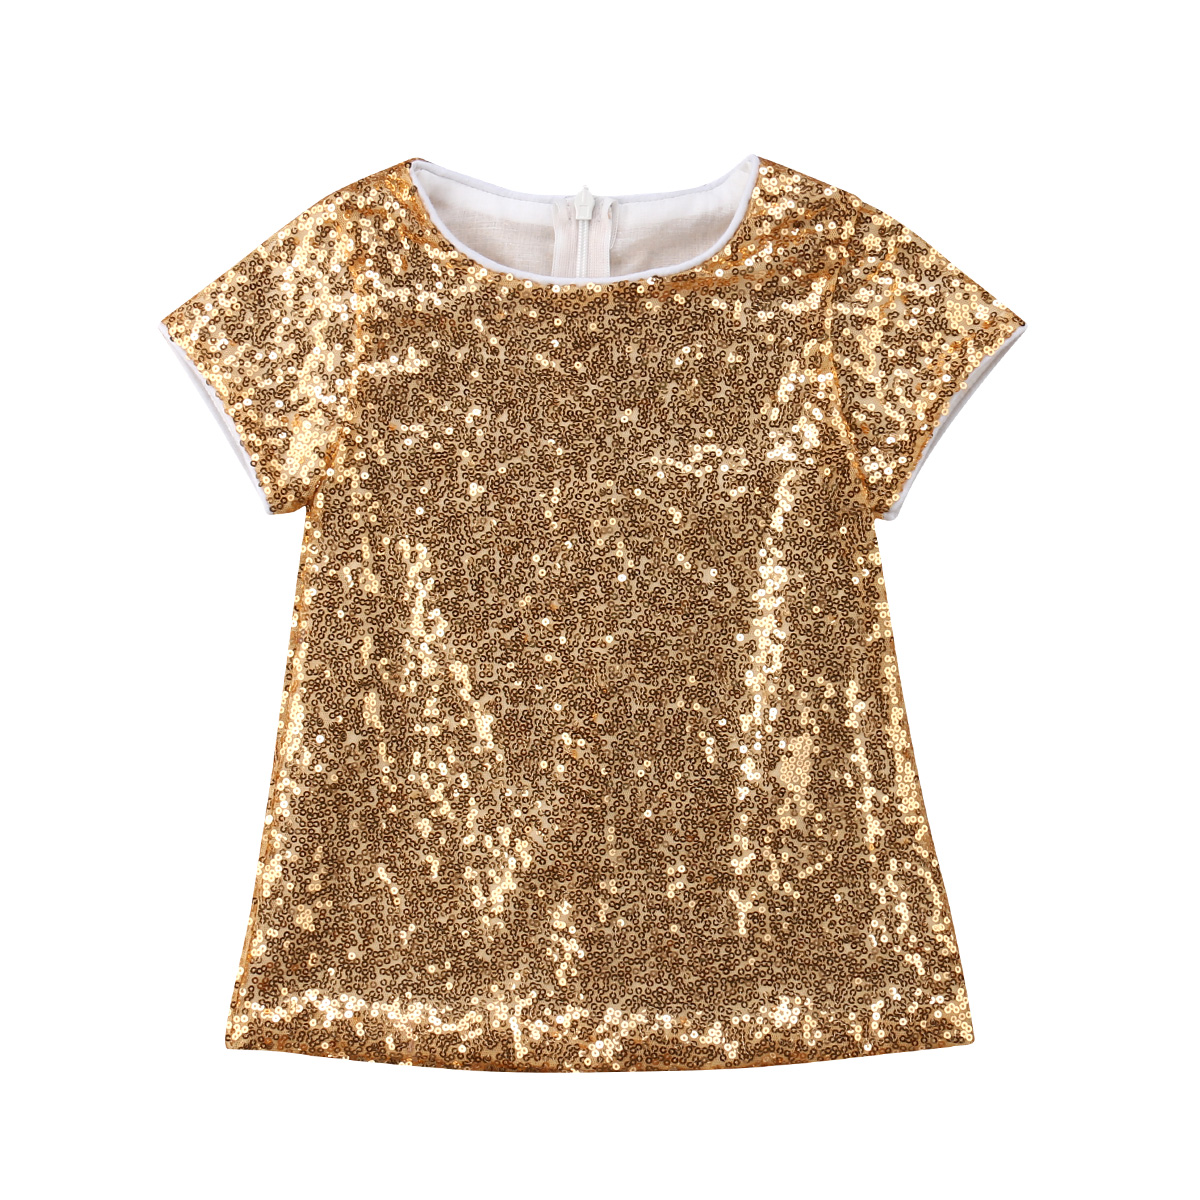 Fashion Kid Baby Girls Gold Sequins A-Line Dress Child Party Birthday Dress Girls Summer Clothing strapless a line short party cocktail dress